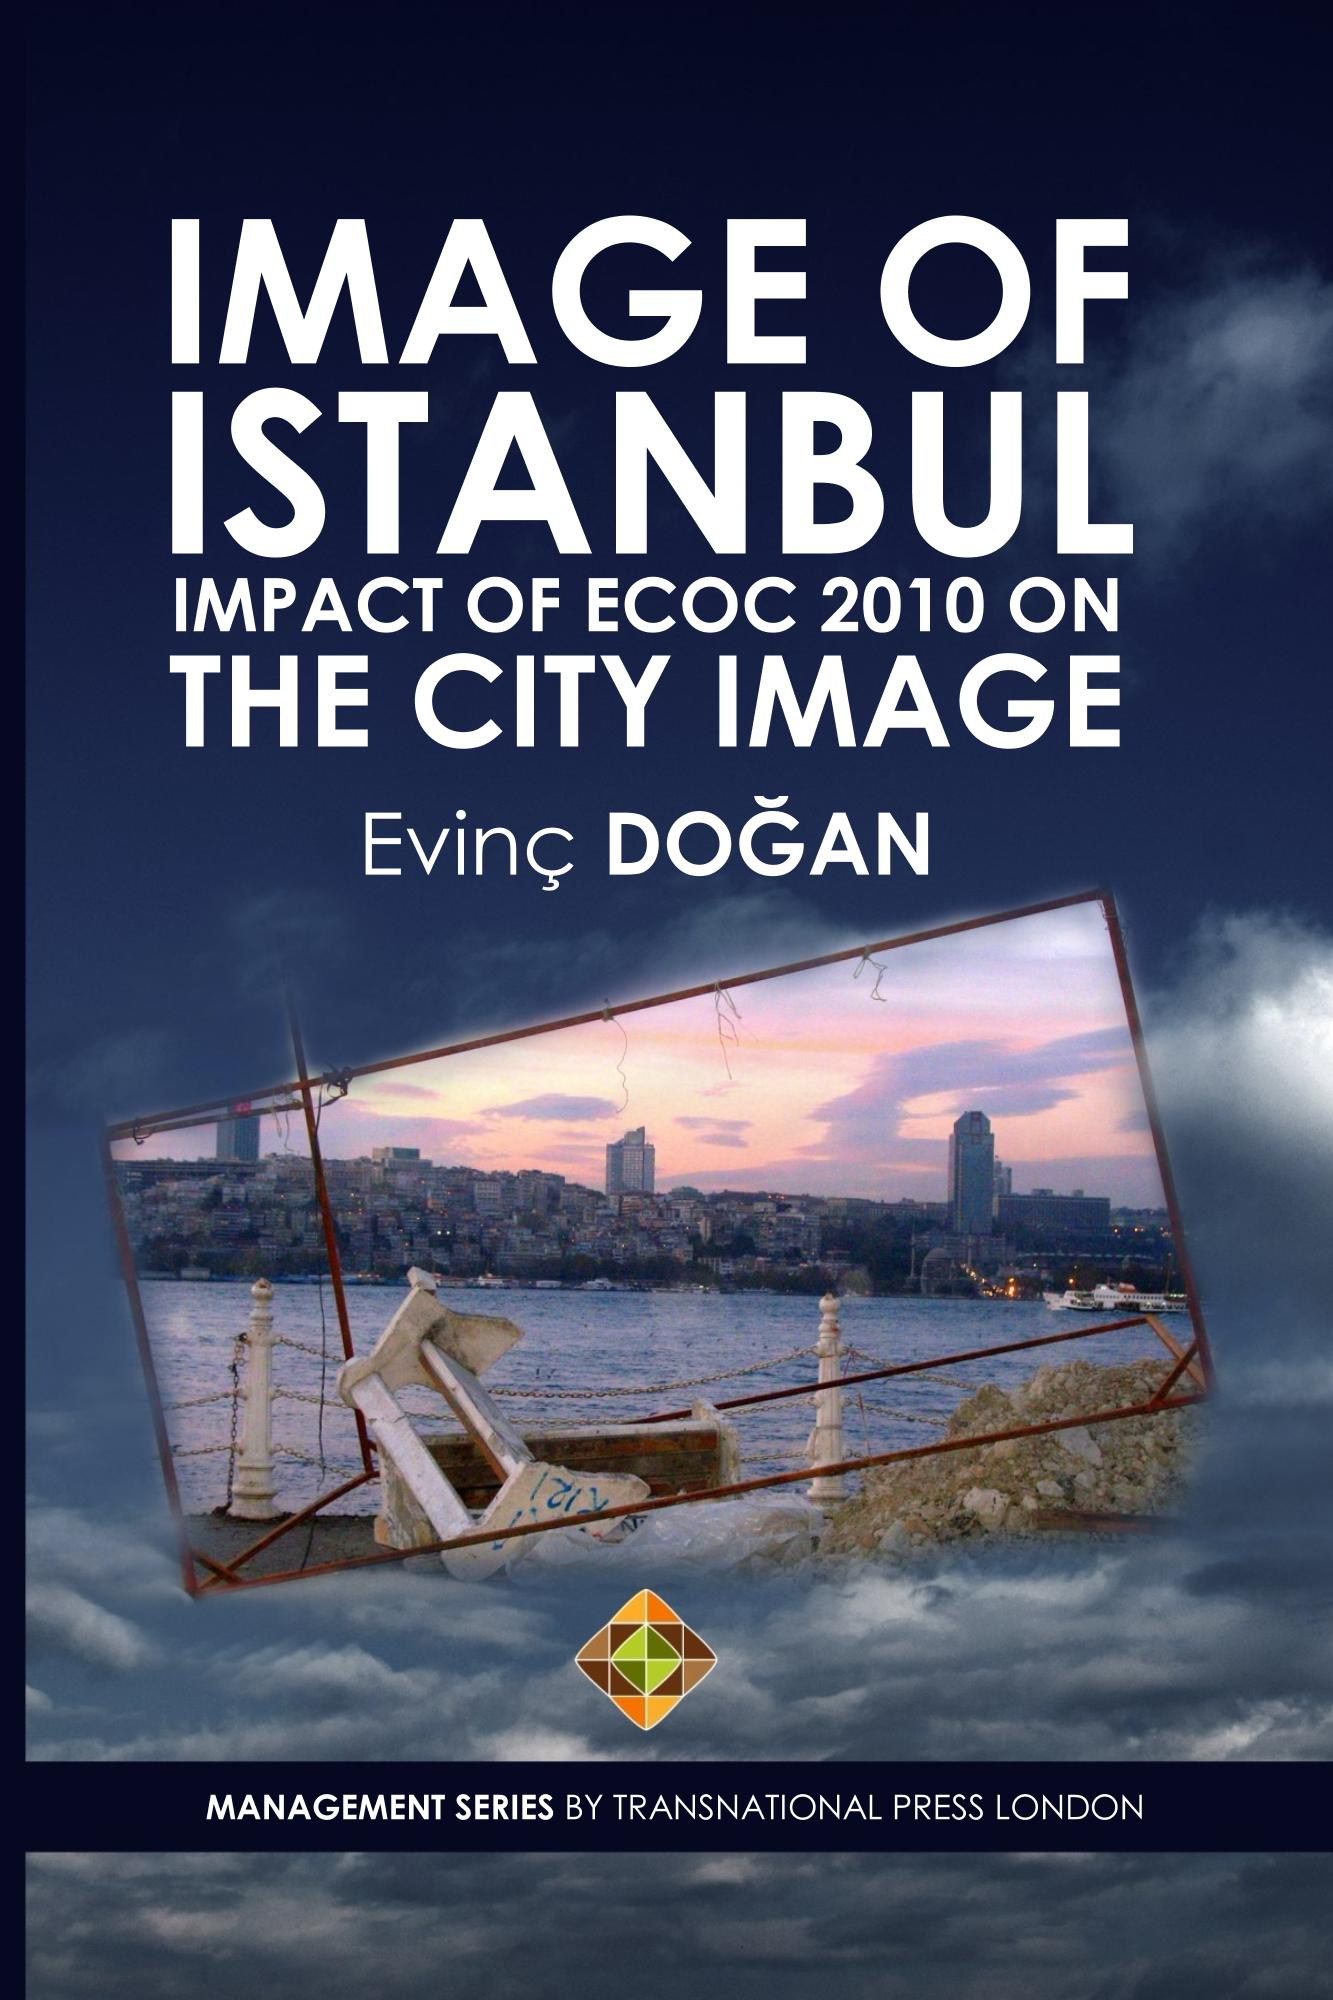 Image of Istanbul: Impact of ECoC 2010 on the City Image by Evinç DOĞAN